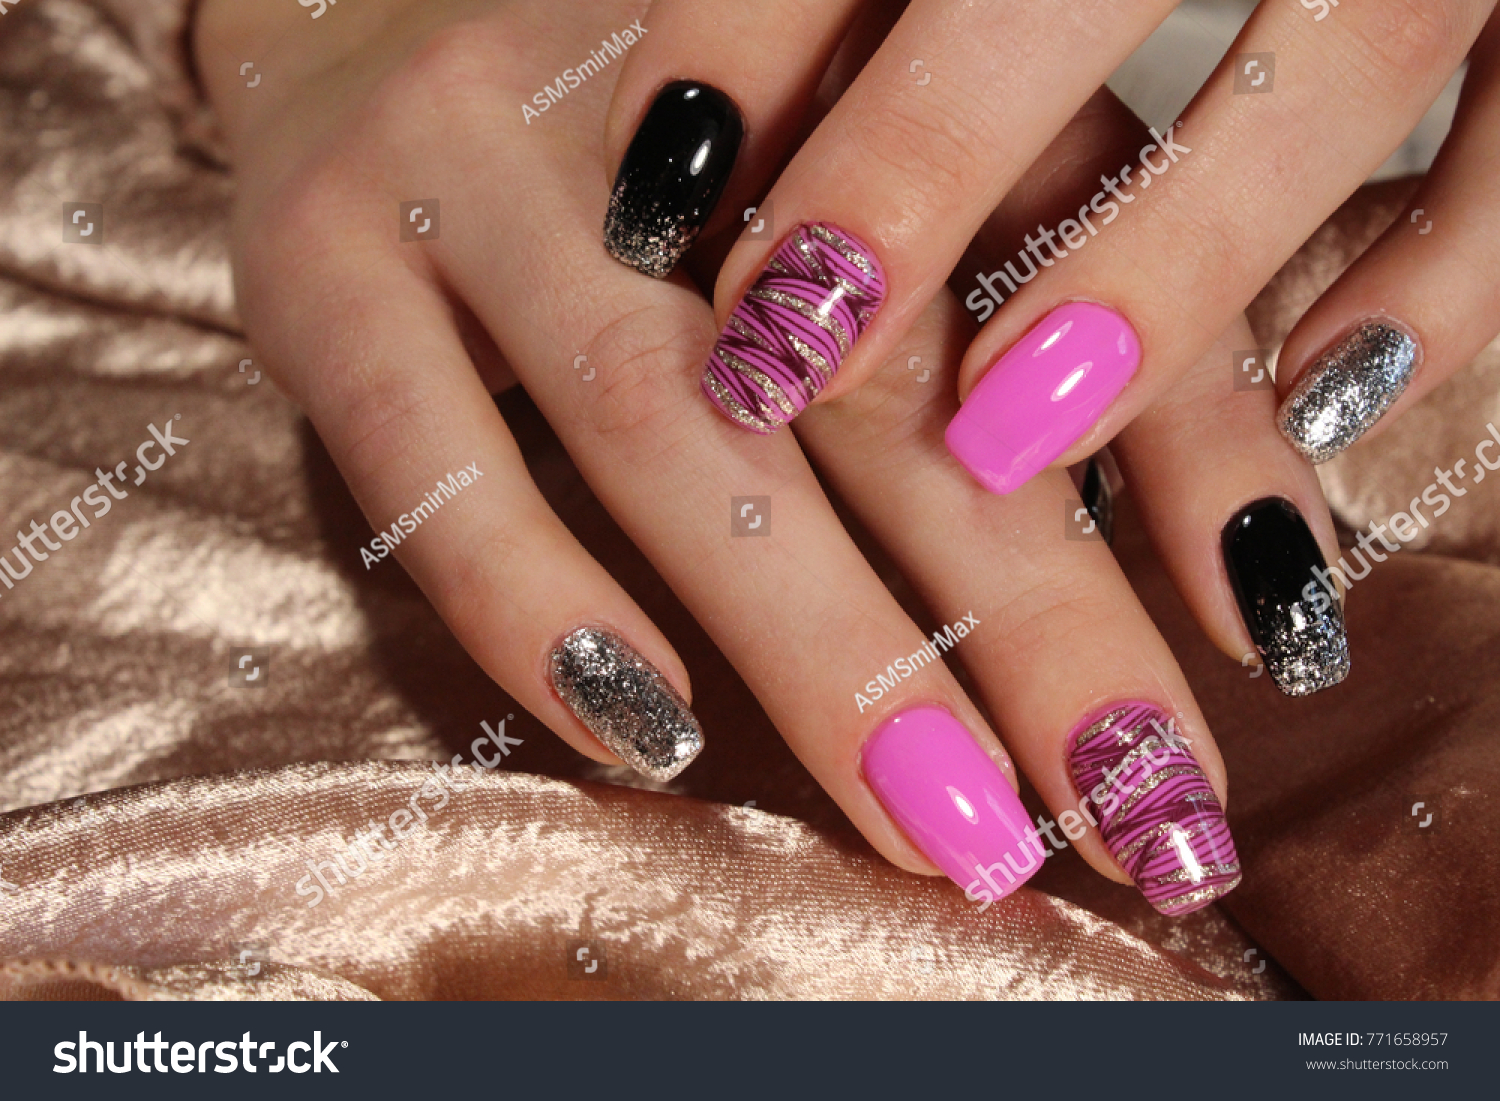 Fashion Nails Design Manicure Best 2017 Stock Photo (Royalty Free ...